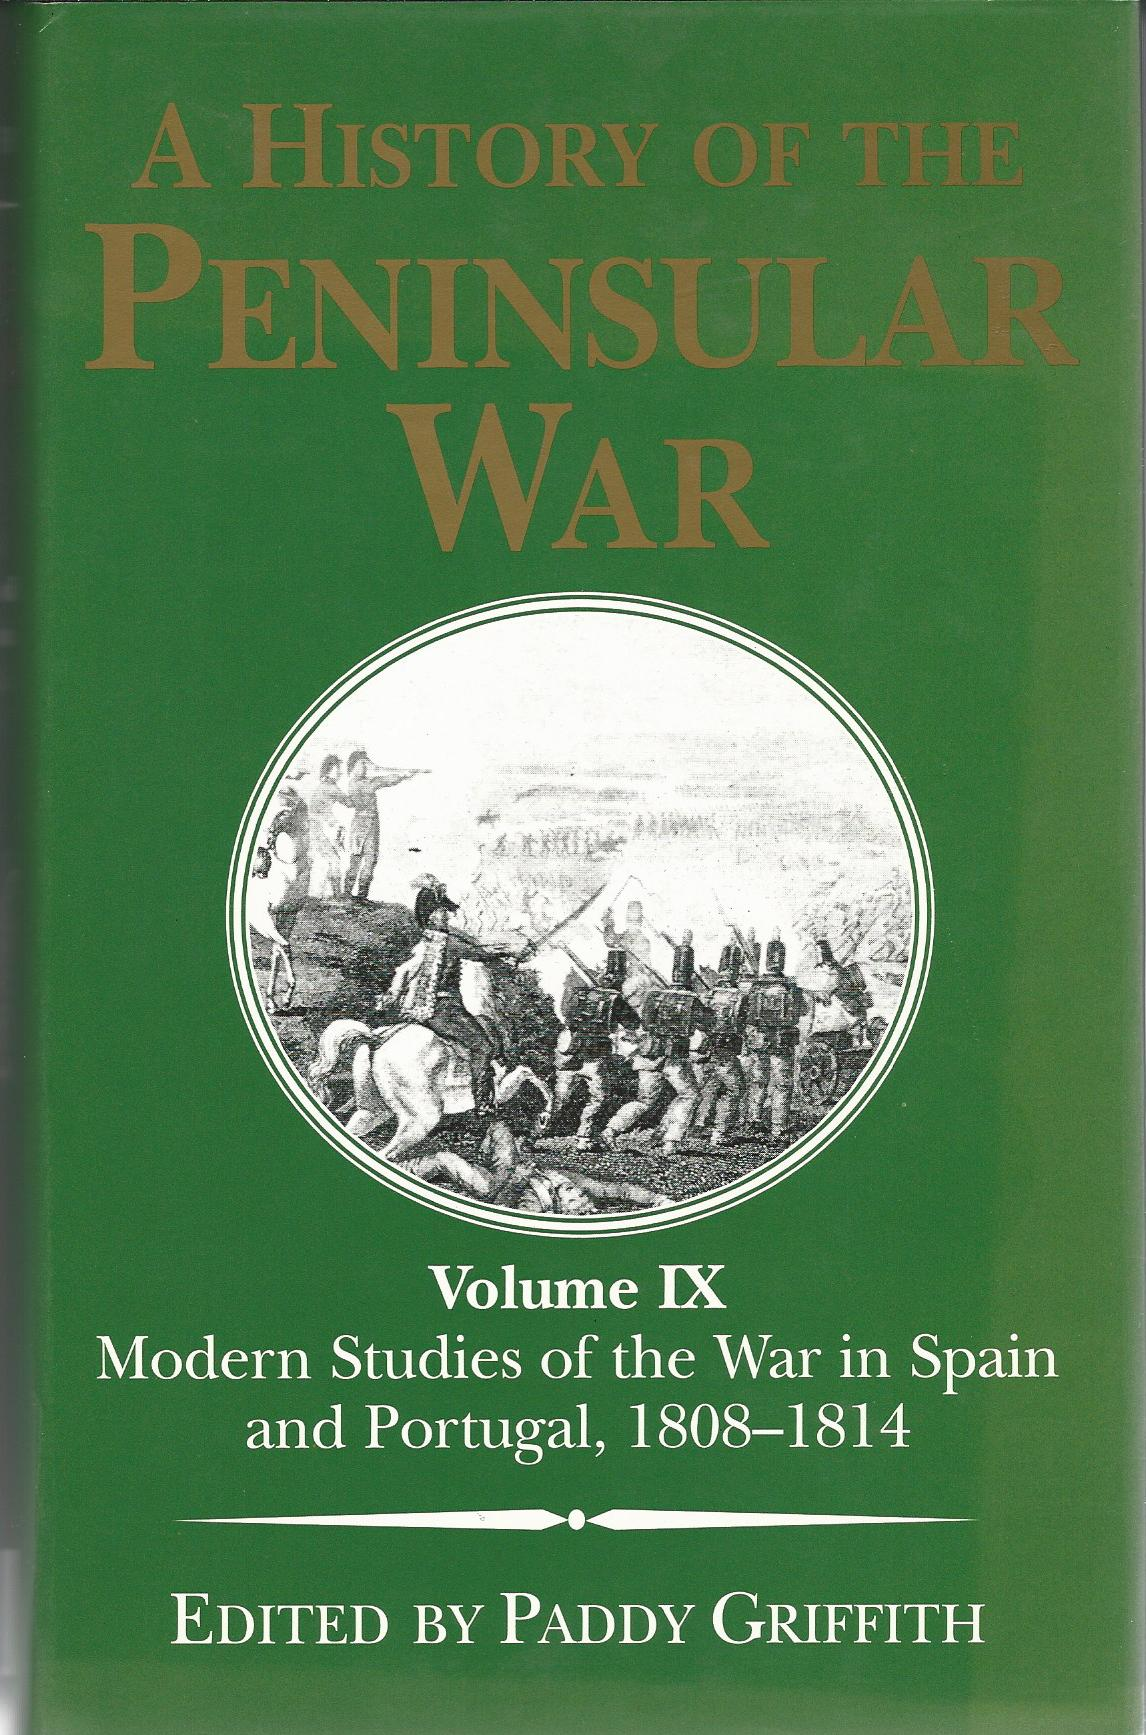 Image for A History of the Peninsular War Volume IX: Modern Studies of the War in Spain and Portugal, 1808-1814.